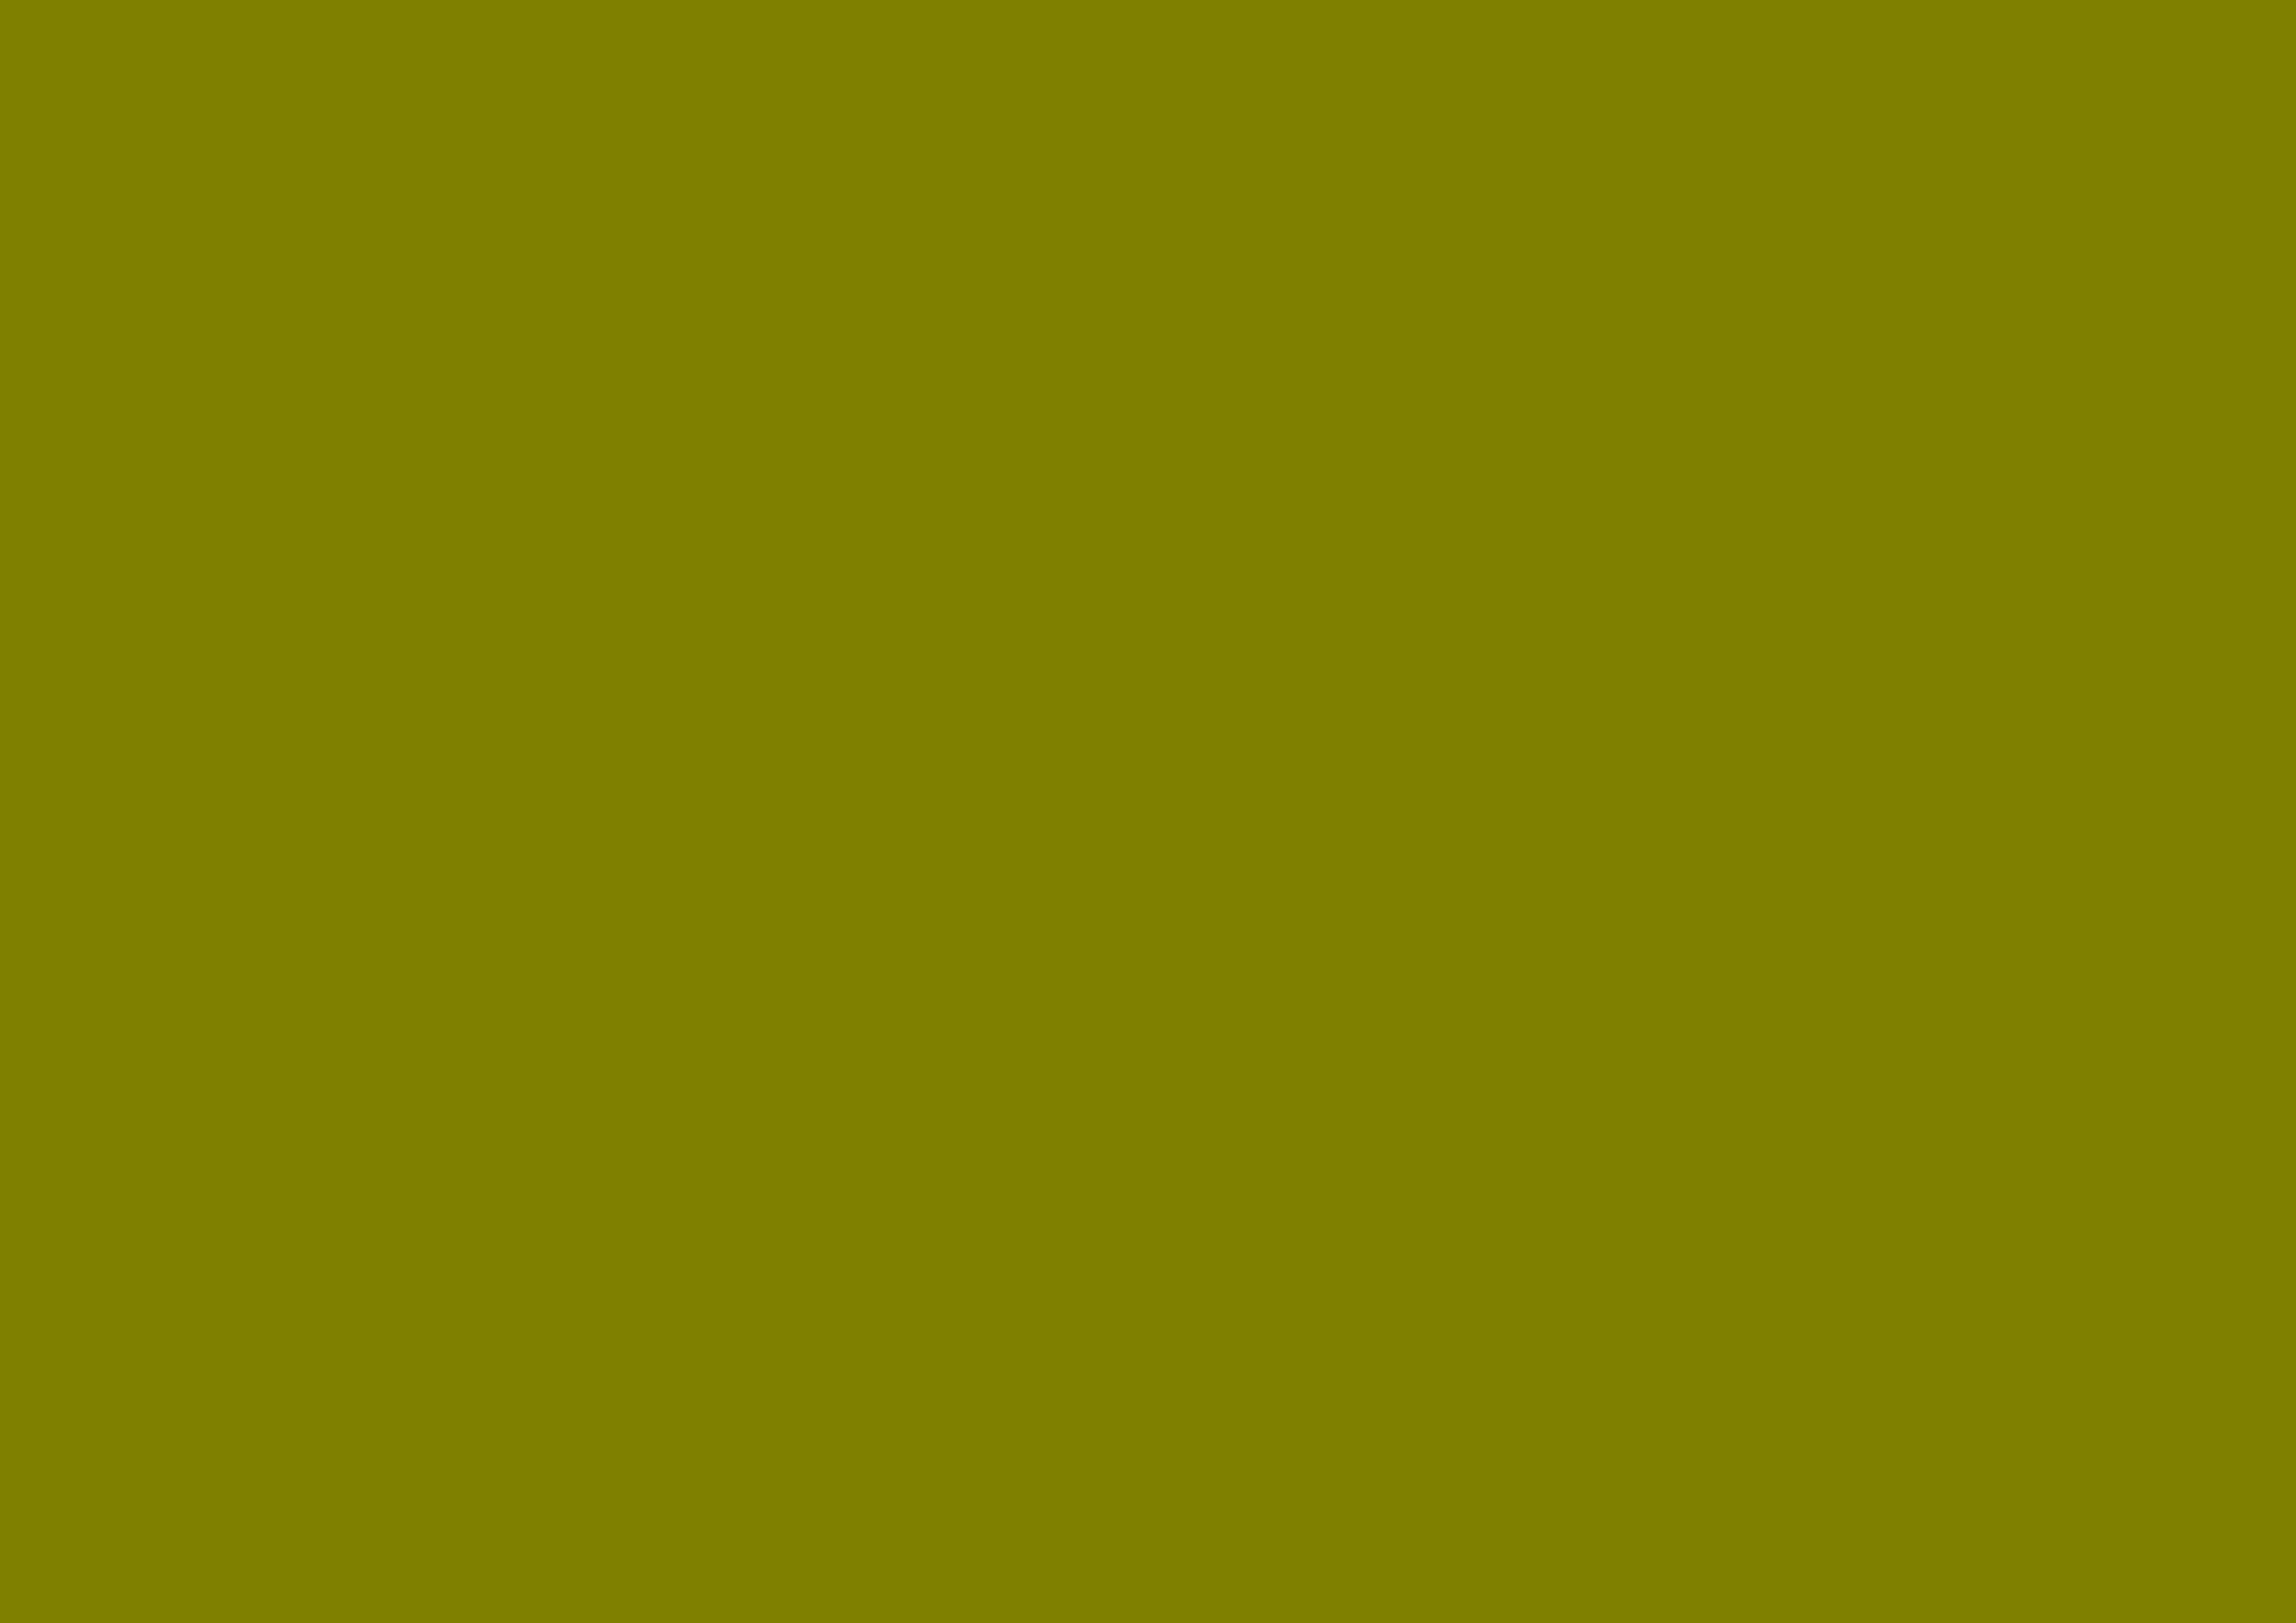 3508x2480 Heart Gold Solid Color Background